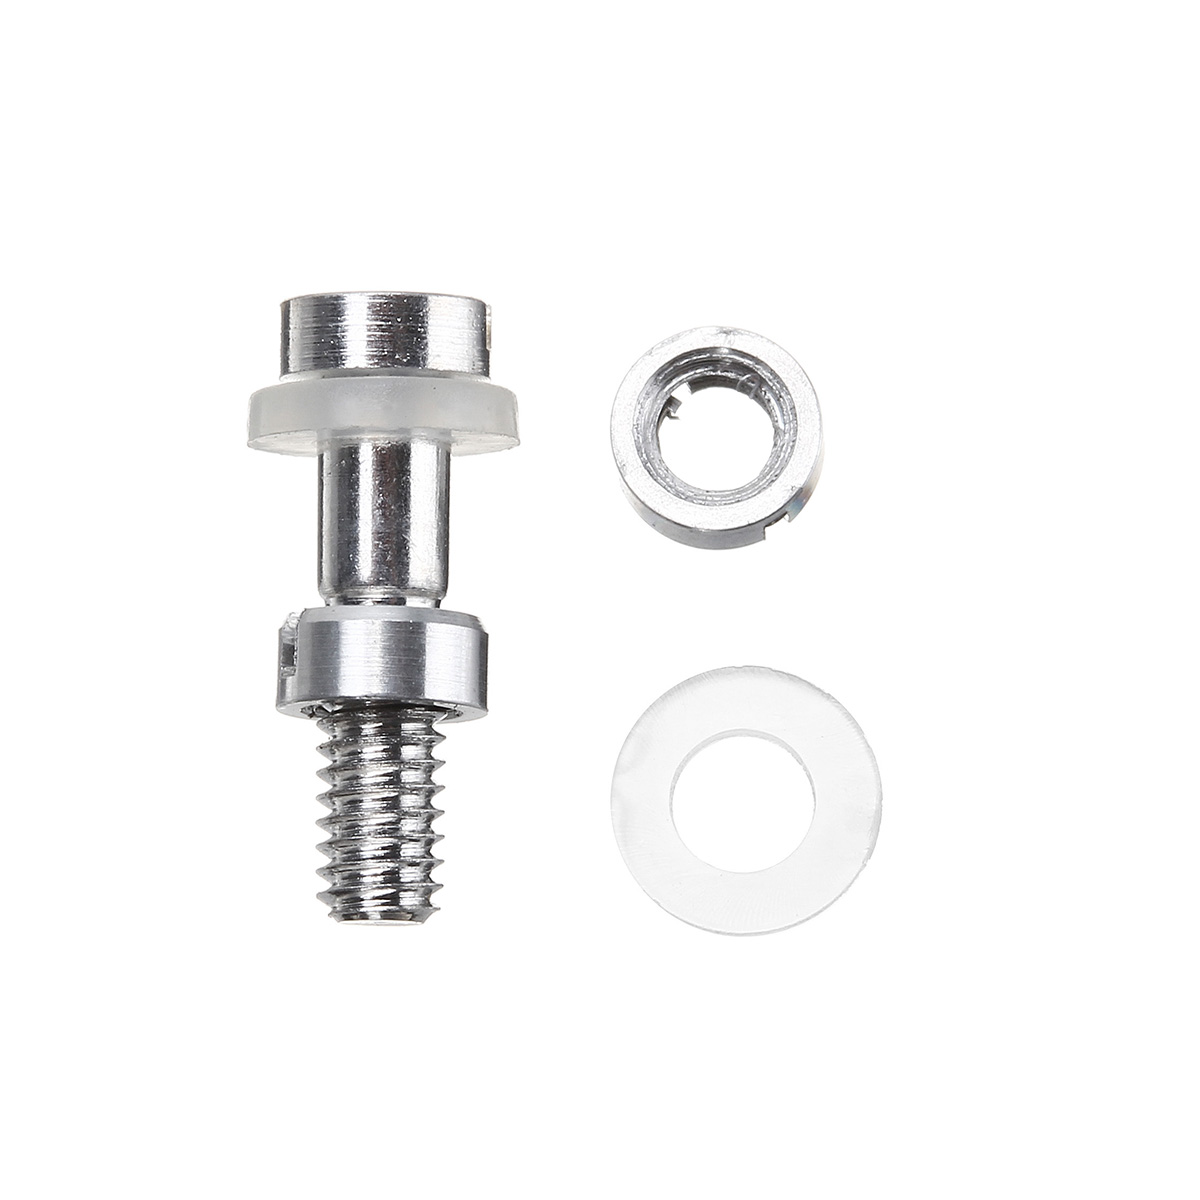 7.5mm/10.5mm/11.5mm/13.5mm/16.5mm M2.5mm Mounting Screw Set For Record Player